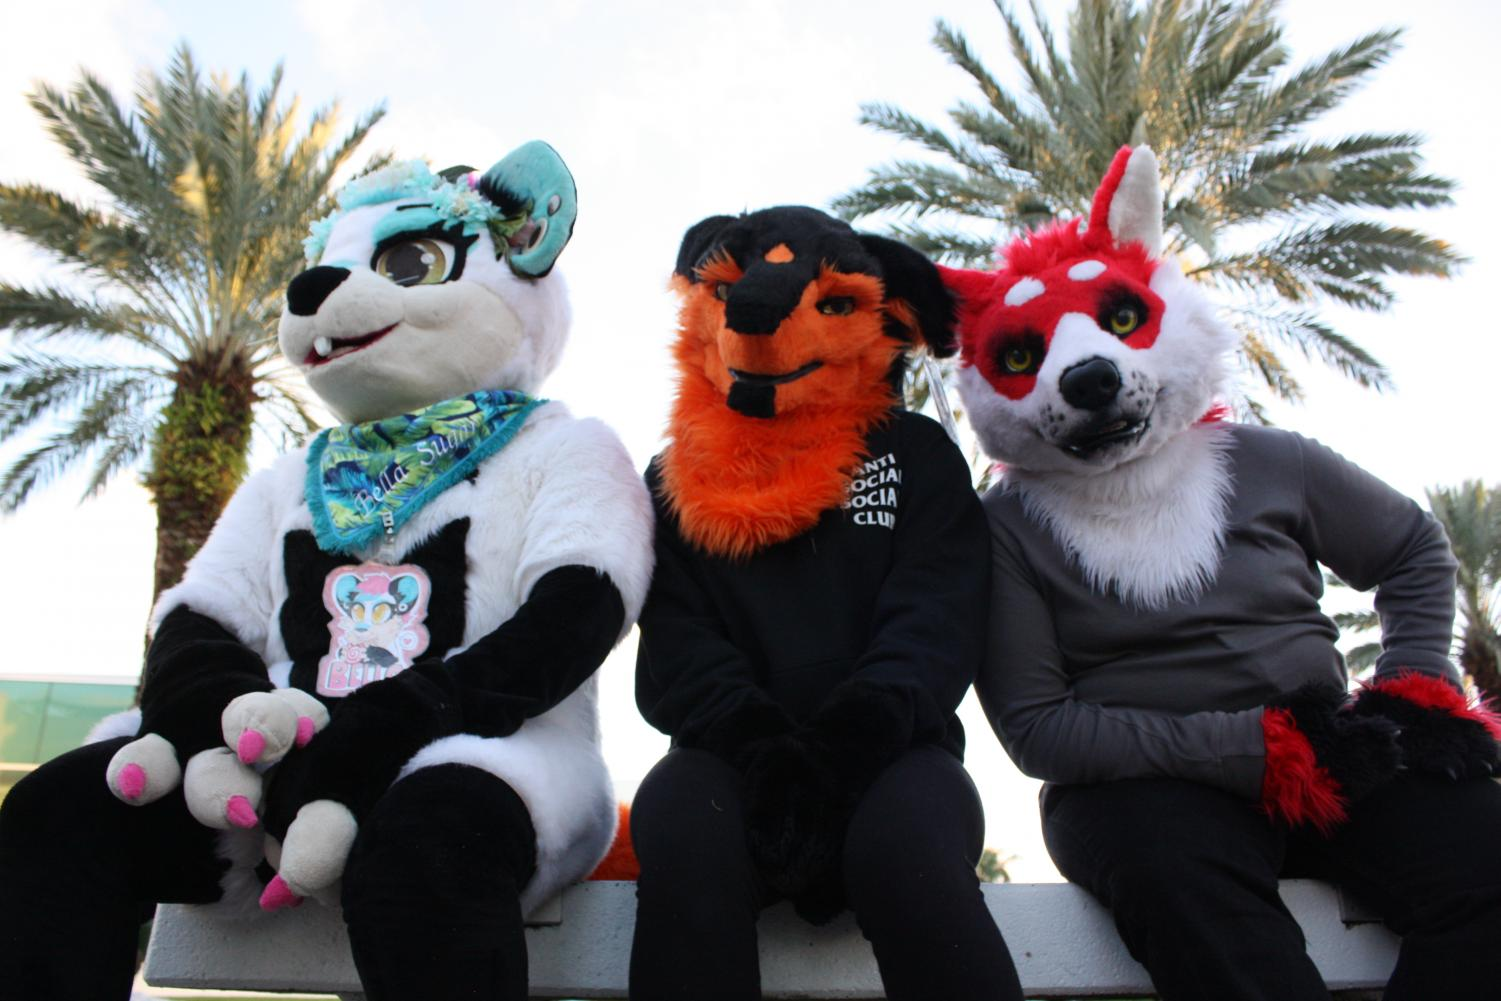 Three members of the Southeast Florida Furries, which recently peaked at 500 members online. Left to right: Amelia Gonzalez (fursona: Bella Sugar), Genna Webber (fursona: Zarø), Mario Rodriguez (fursona: Bark Dango. Photo by Kristen Grau